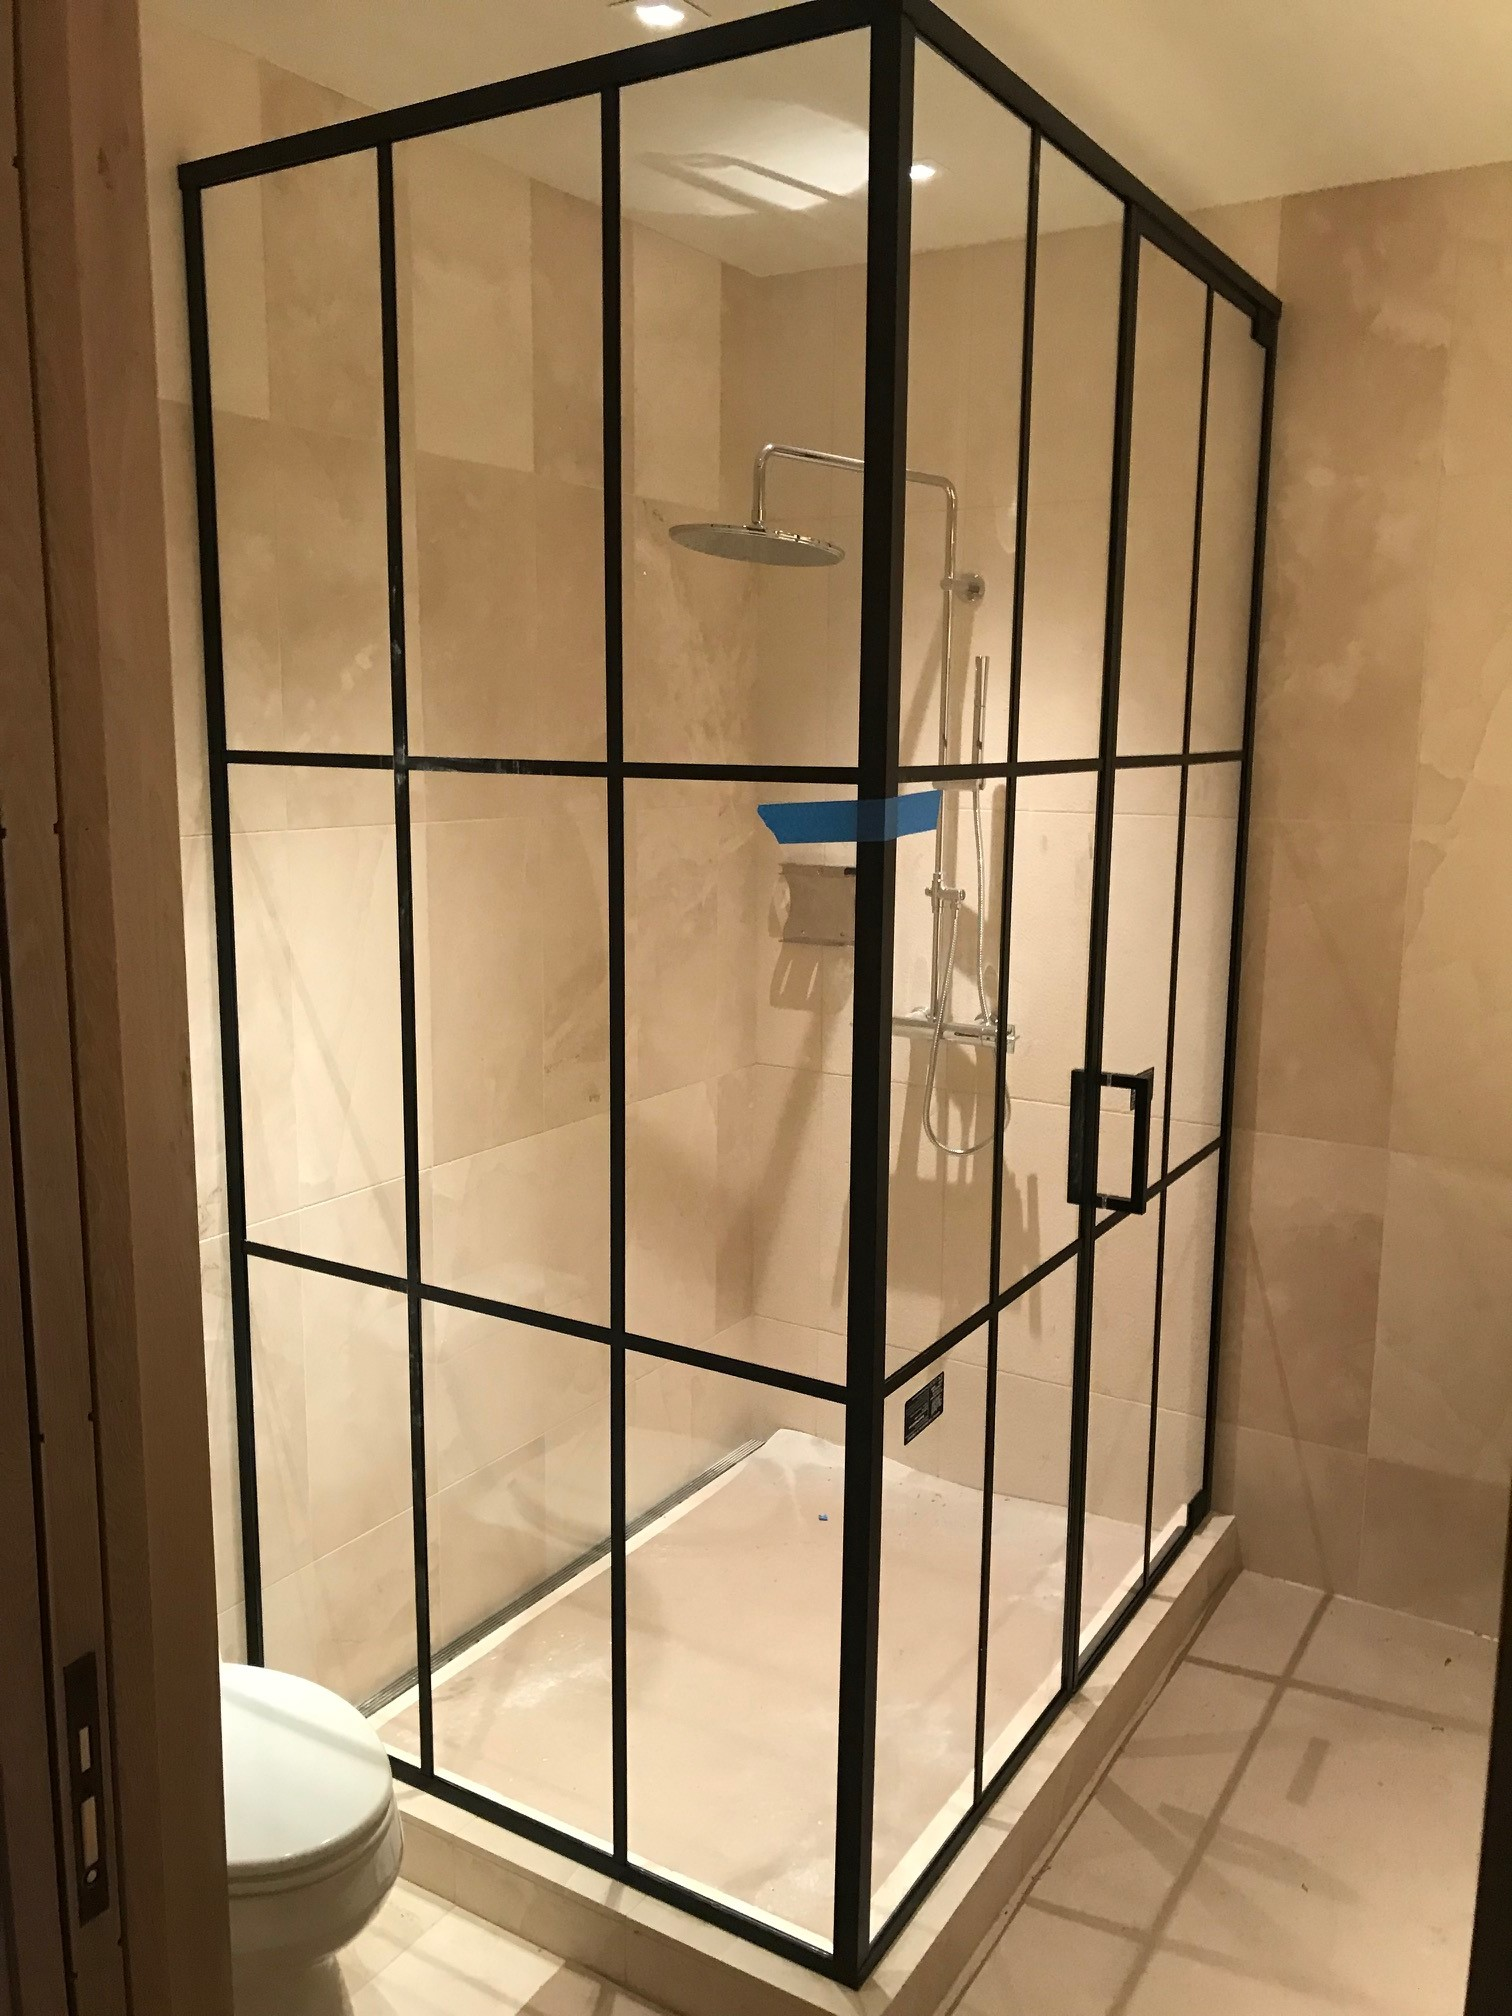 Shower doors 3-JPAG.JPG